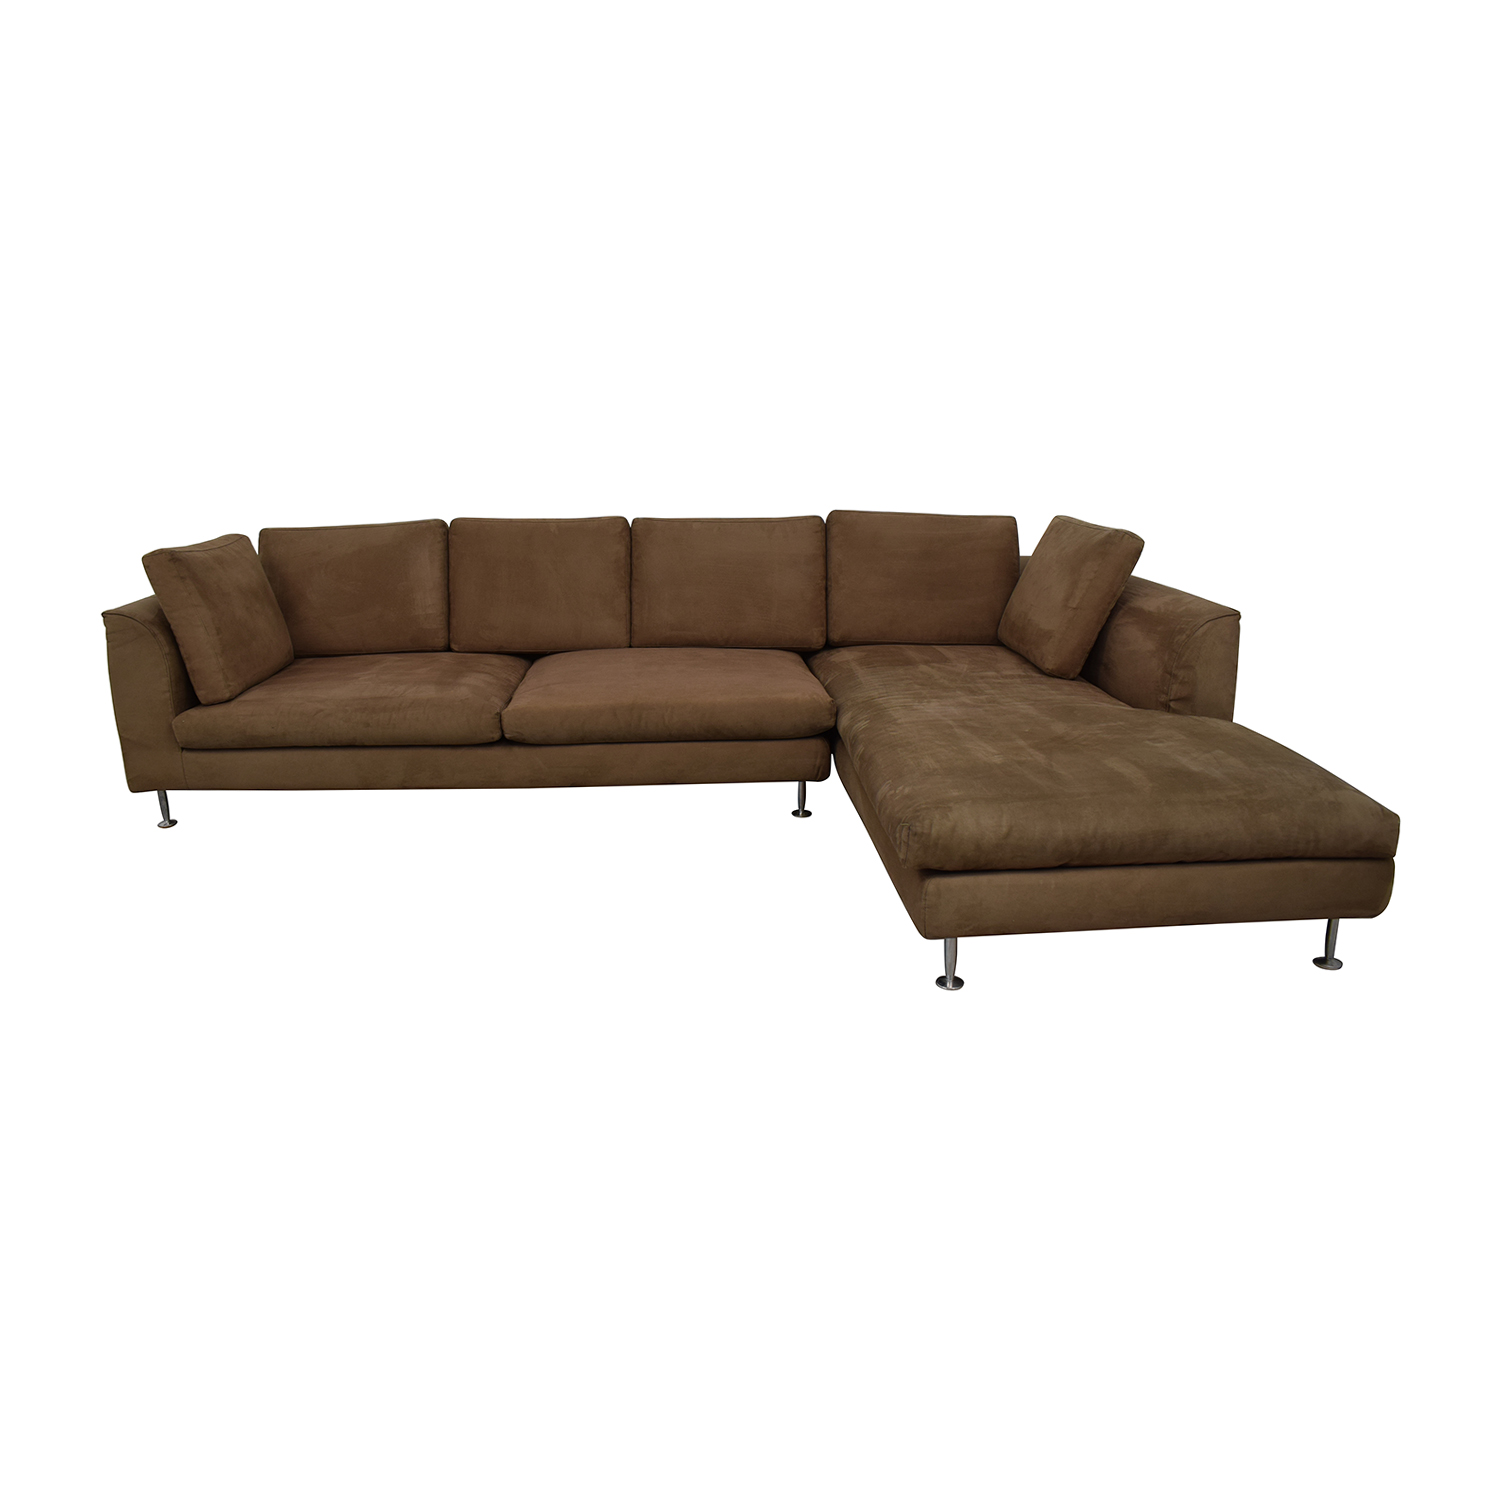 Brown Sectional Sofa With Chaise for sale